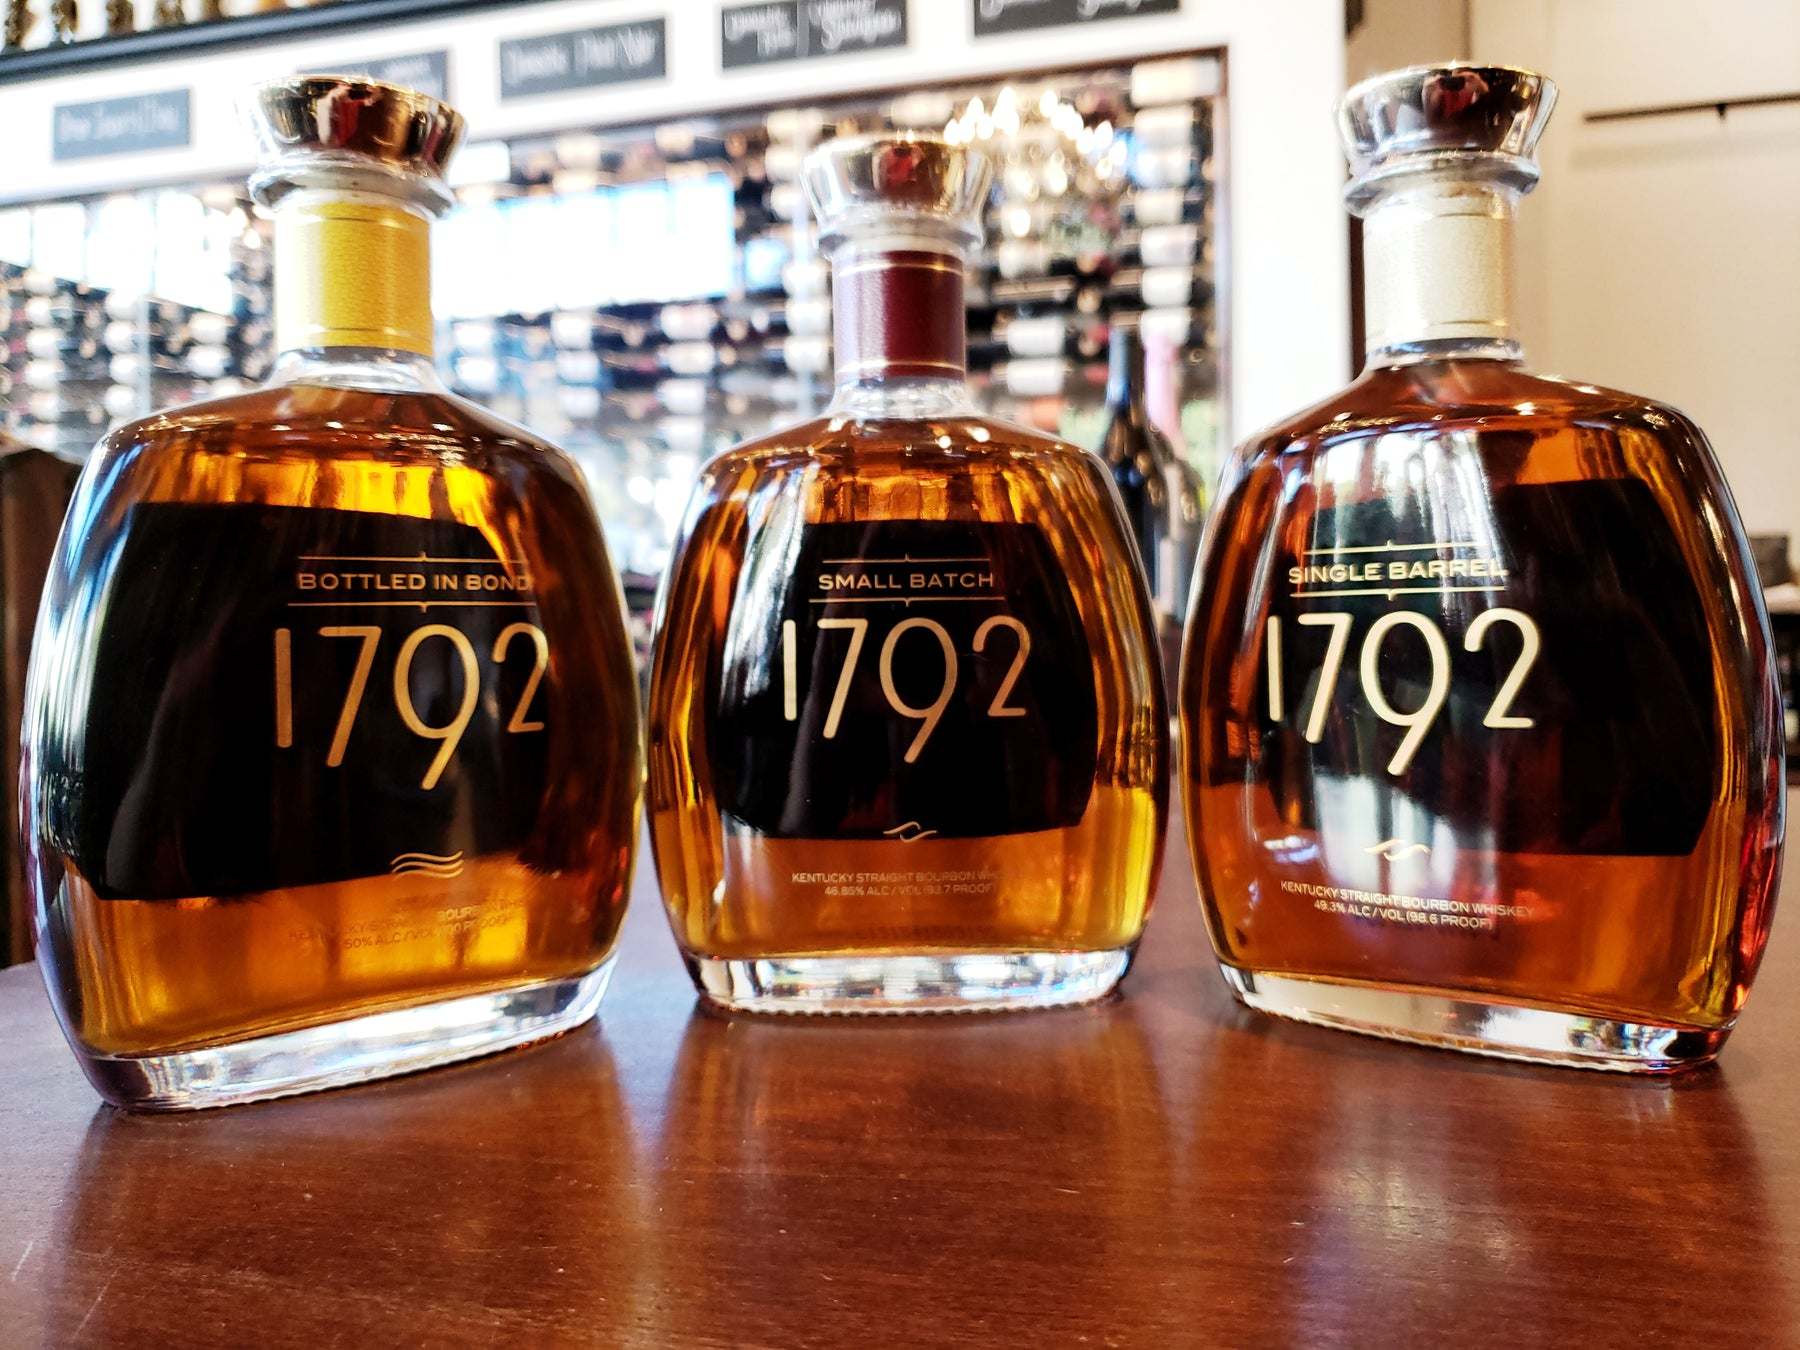 1792 Bourbon | Free Tasting Friday, October 25th 5-7pm